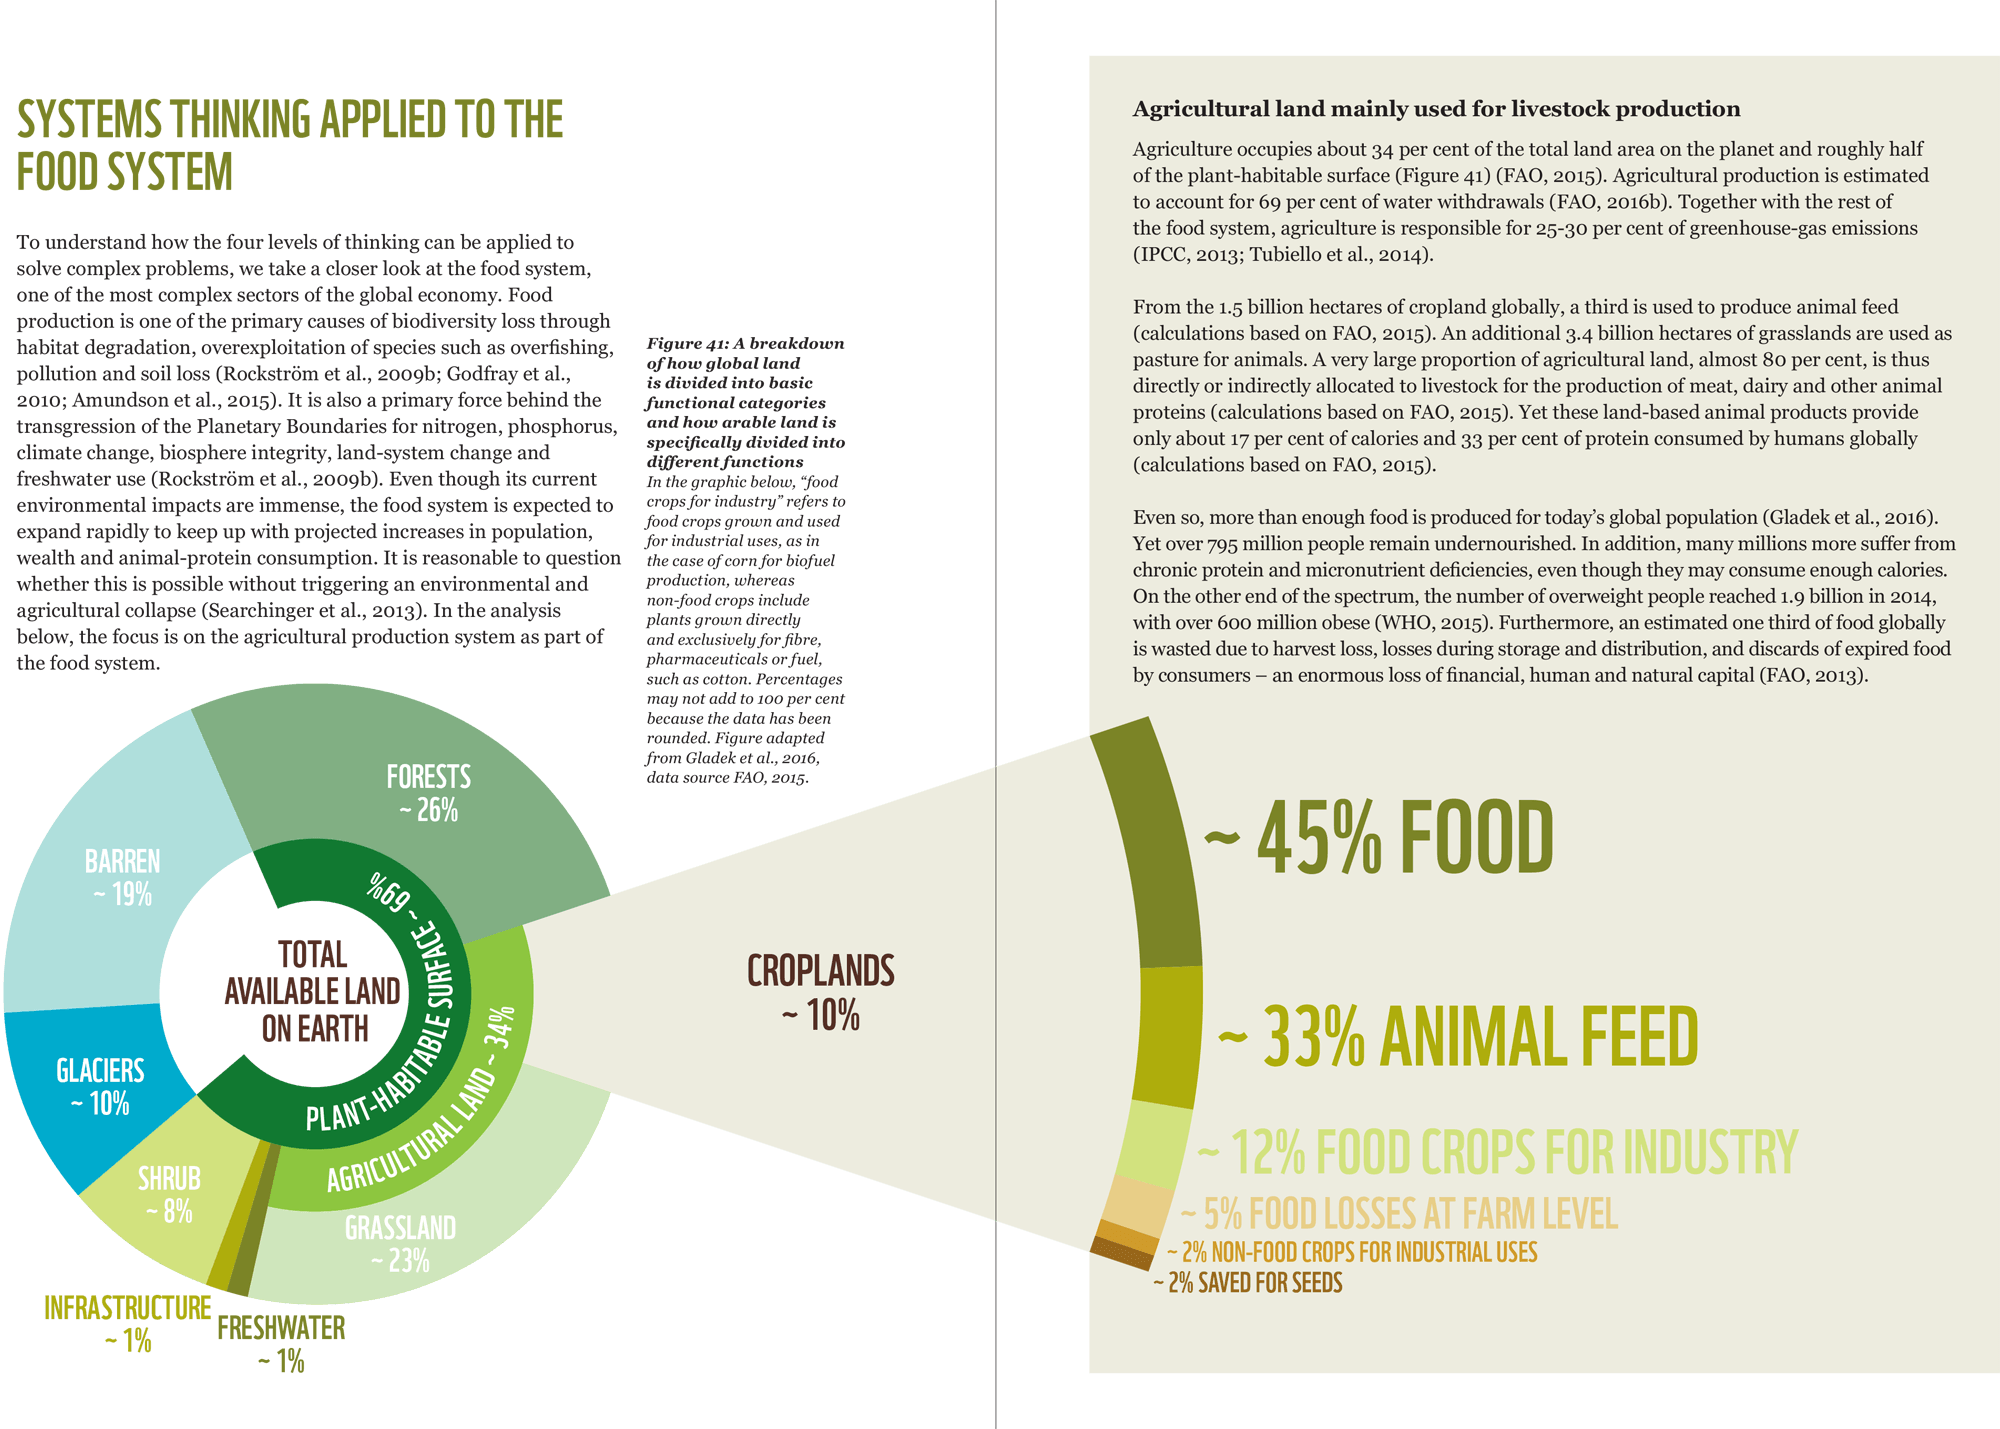 Food production is highlighted in the report as one of the primary causes of biodiversity loss. Metabolic outlined how a systems approach can help identify levers for change that address endemic unsustainable mechanisms in the system.